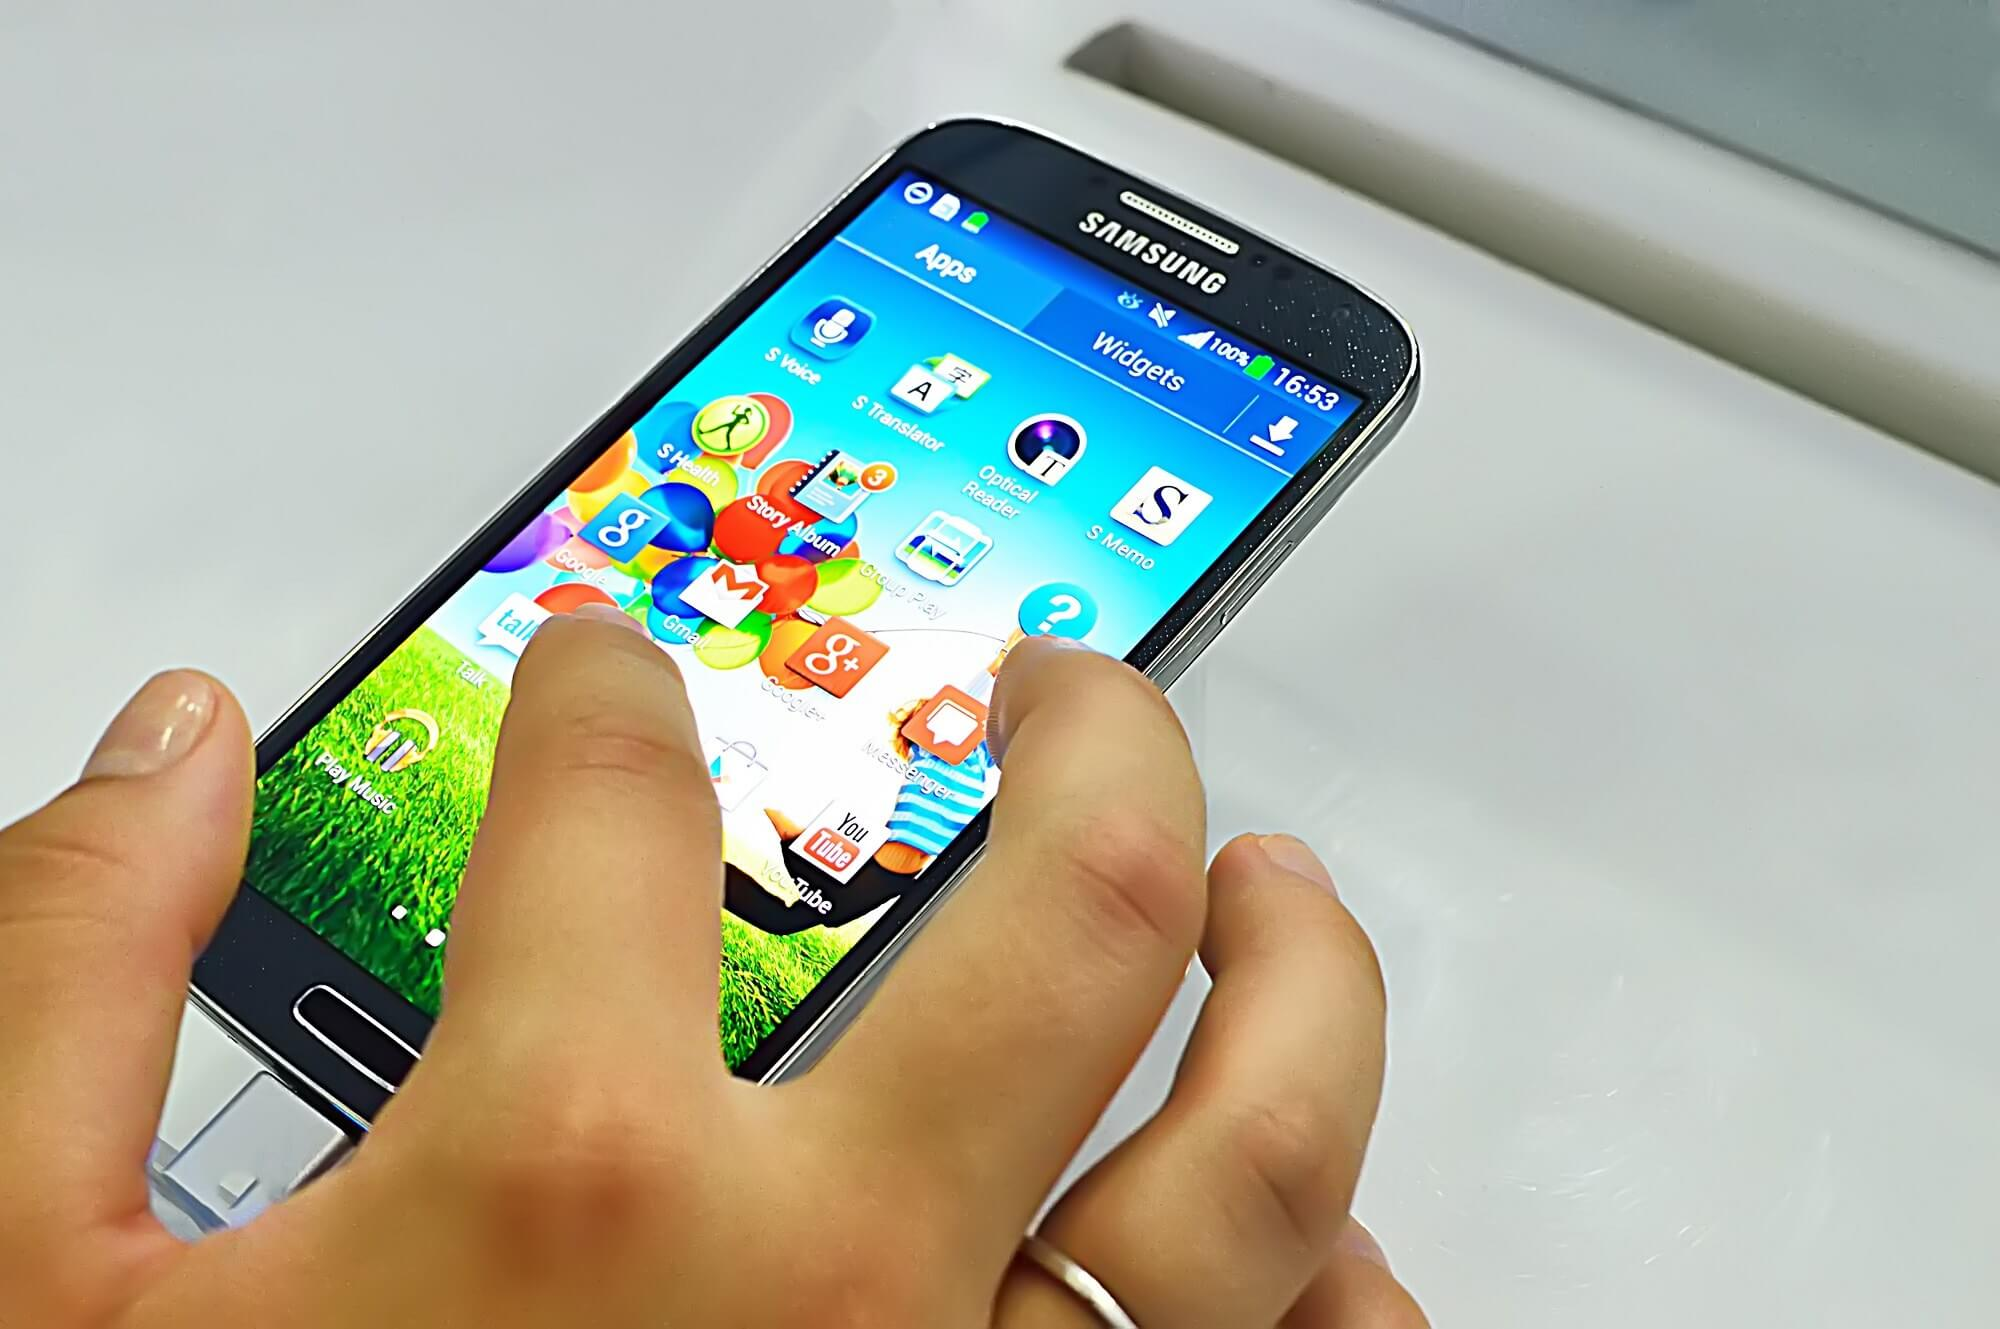 Samsung will pay Galaxy S4 owners $10 after it used benchmark-cheating code